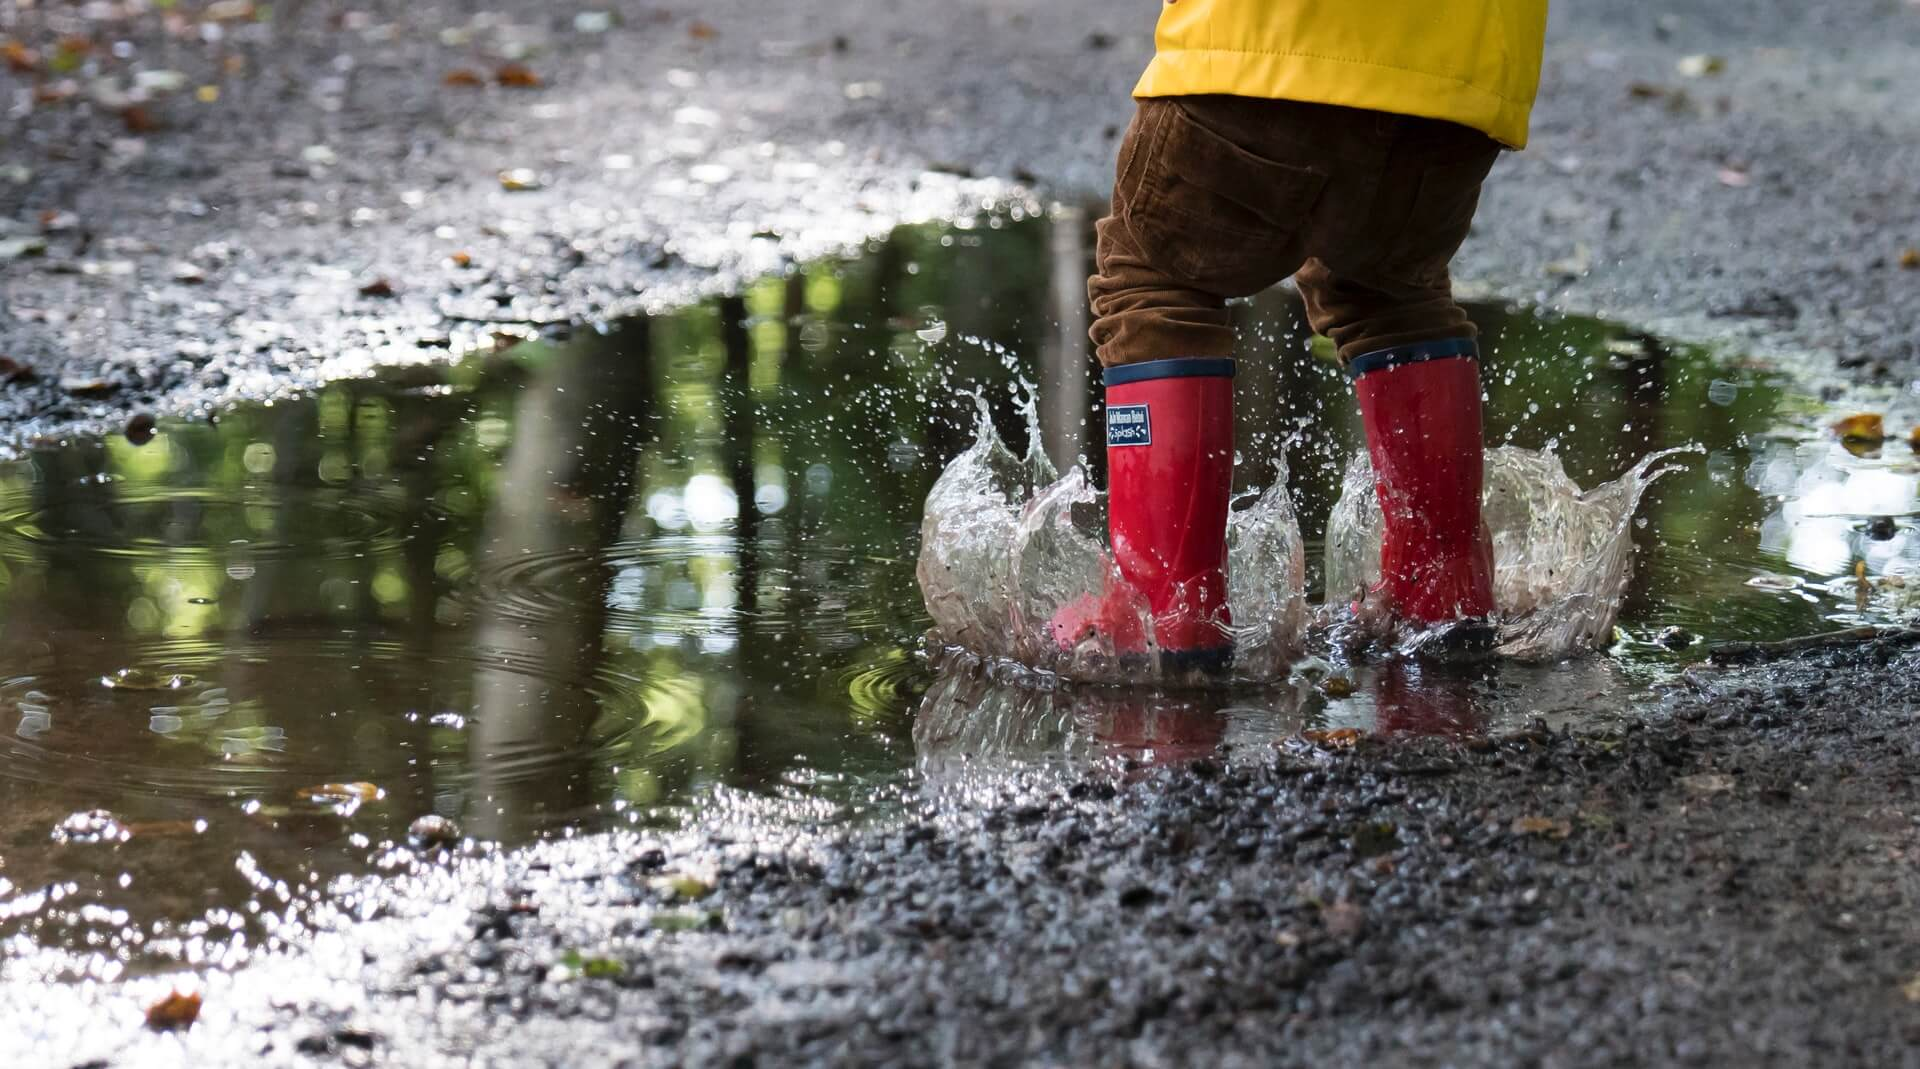 Closeup of a kid wearing red rubber boots jumping in puddles